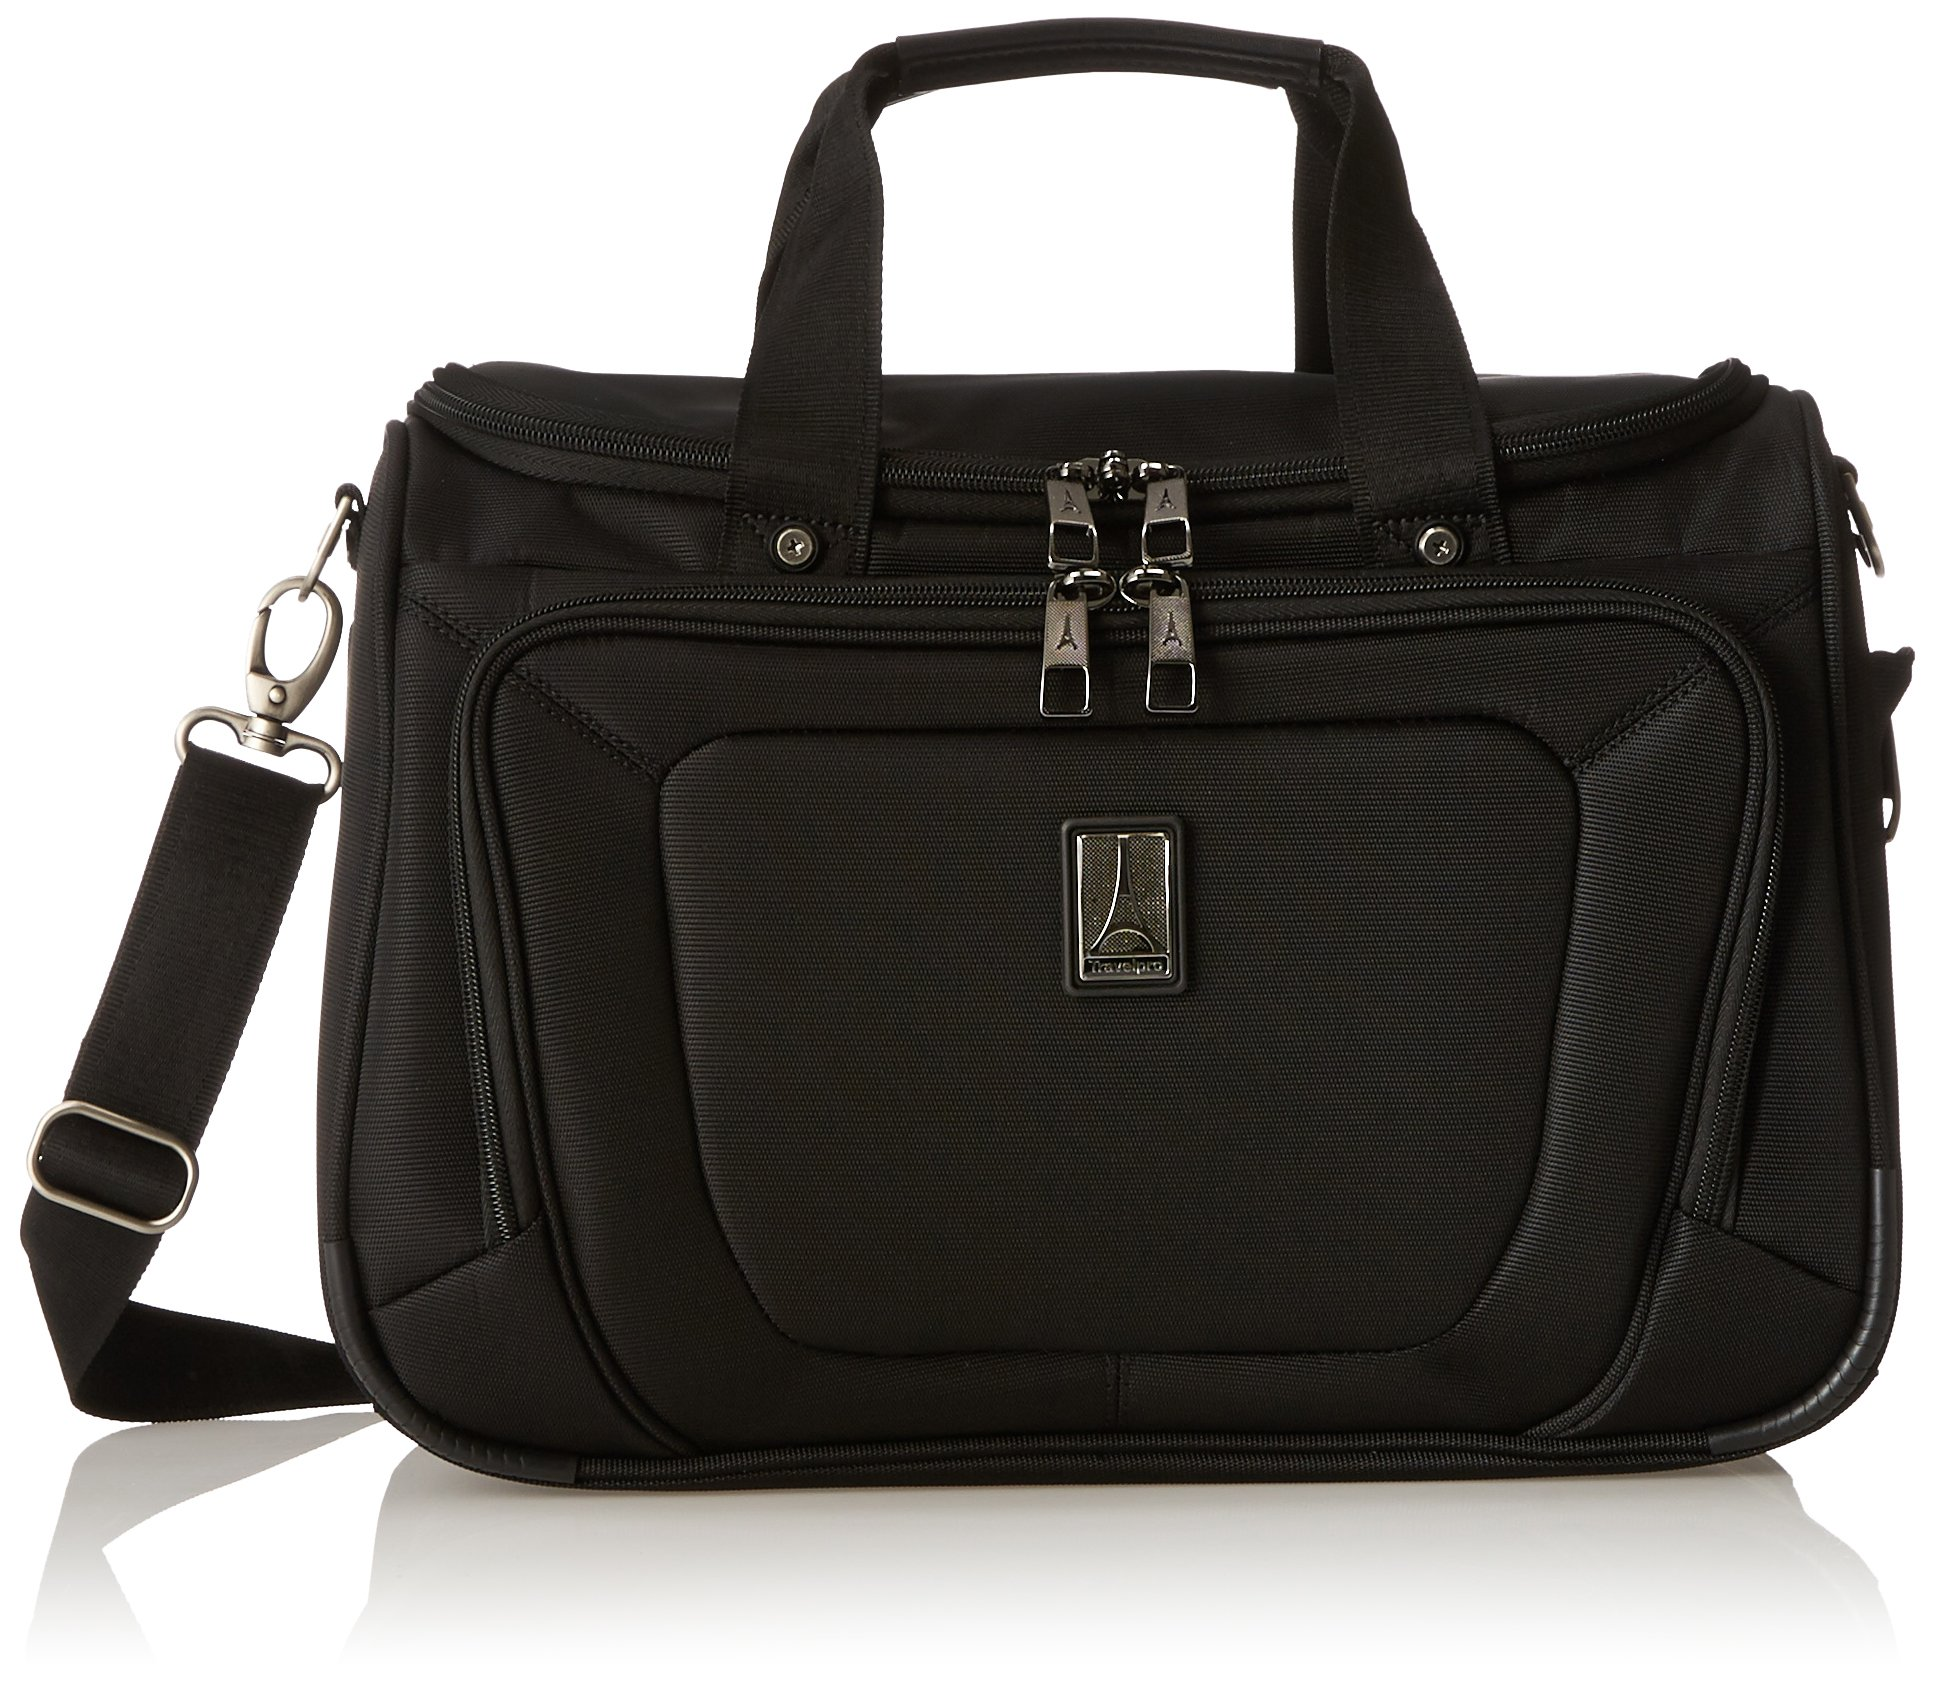 Travelpro Crew 10 Deluxe Tote, Black, One Size